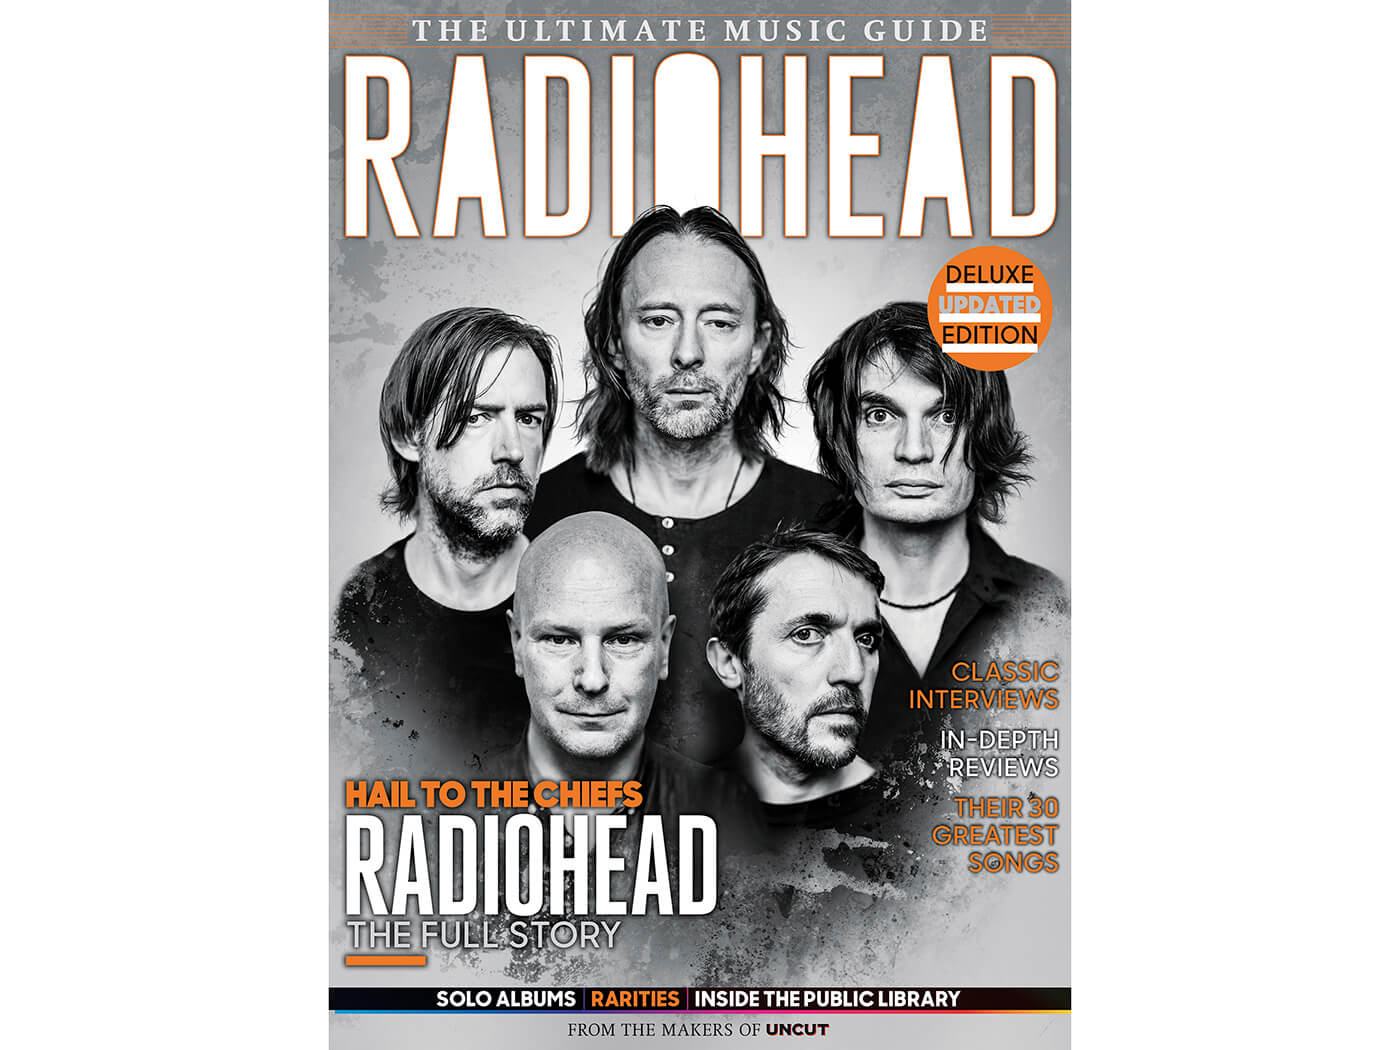 Radiohead – The Deluxe Ultimate Music Guide